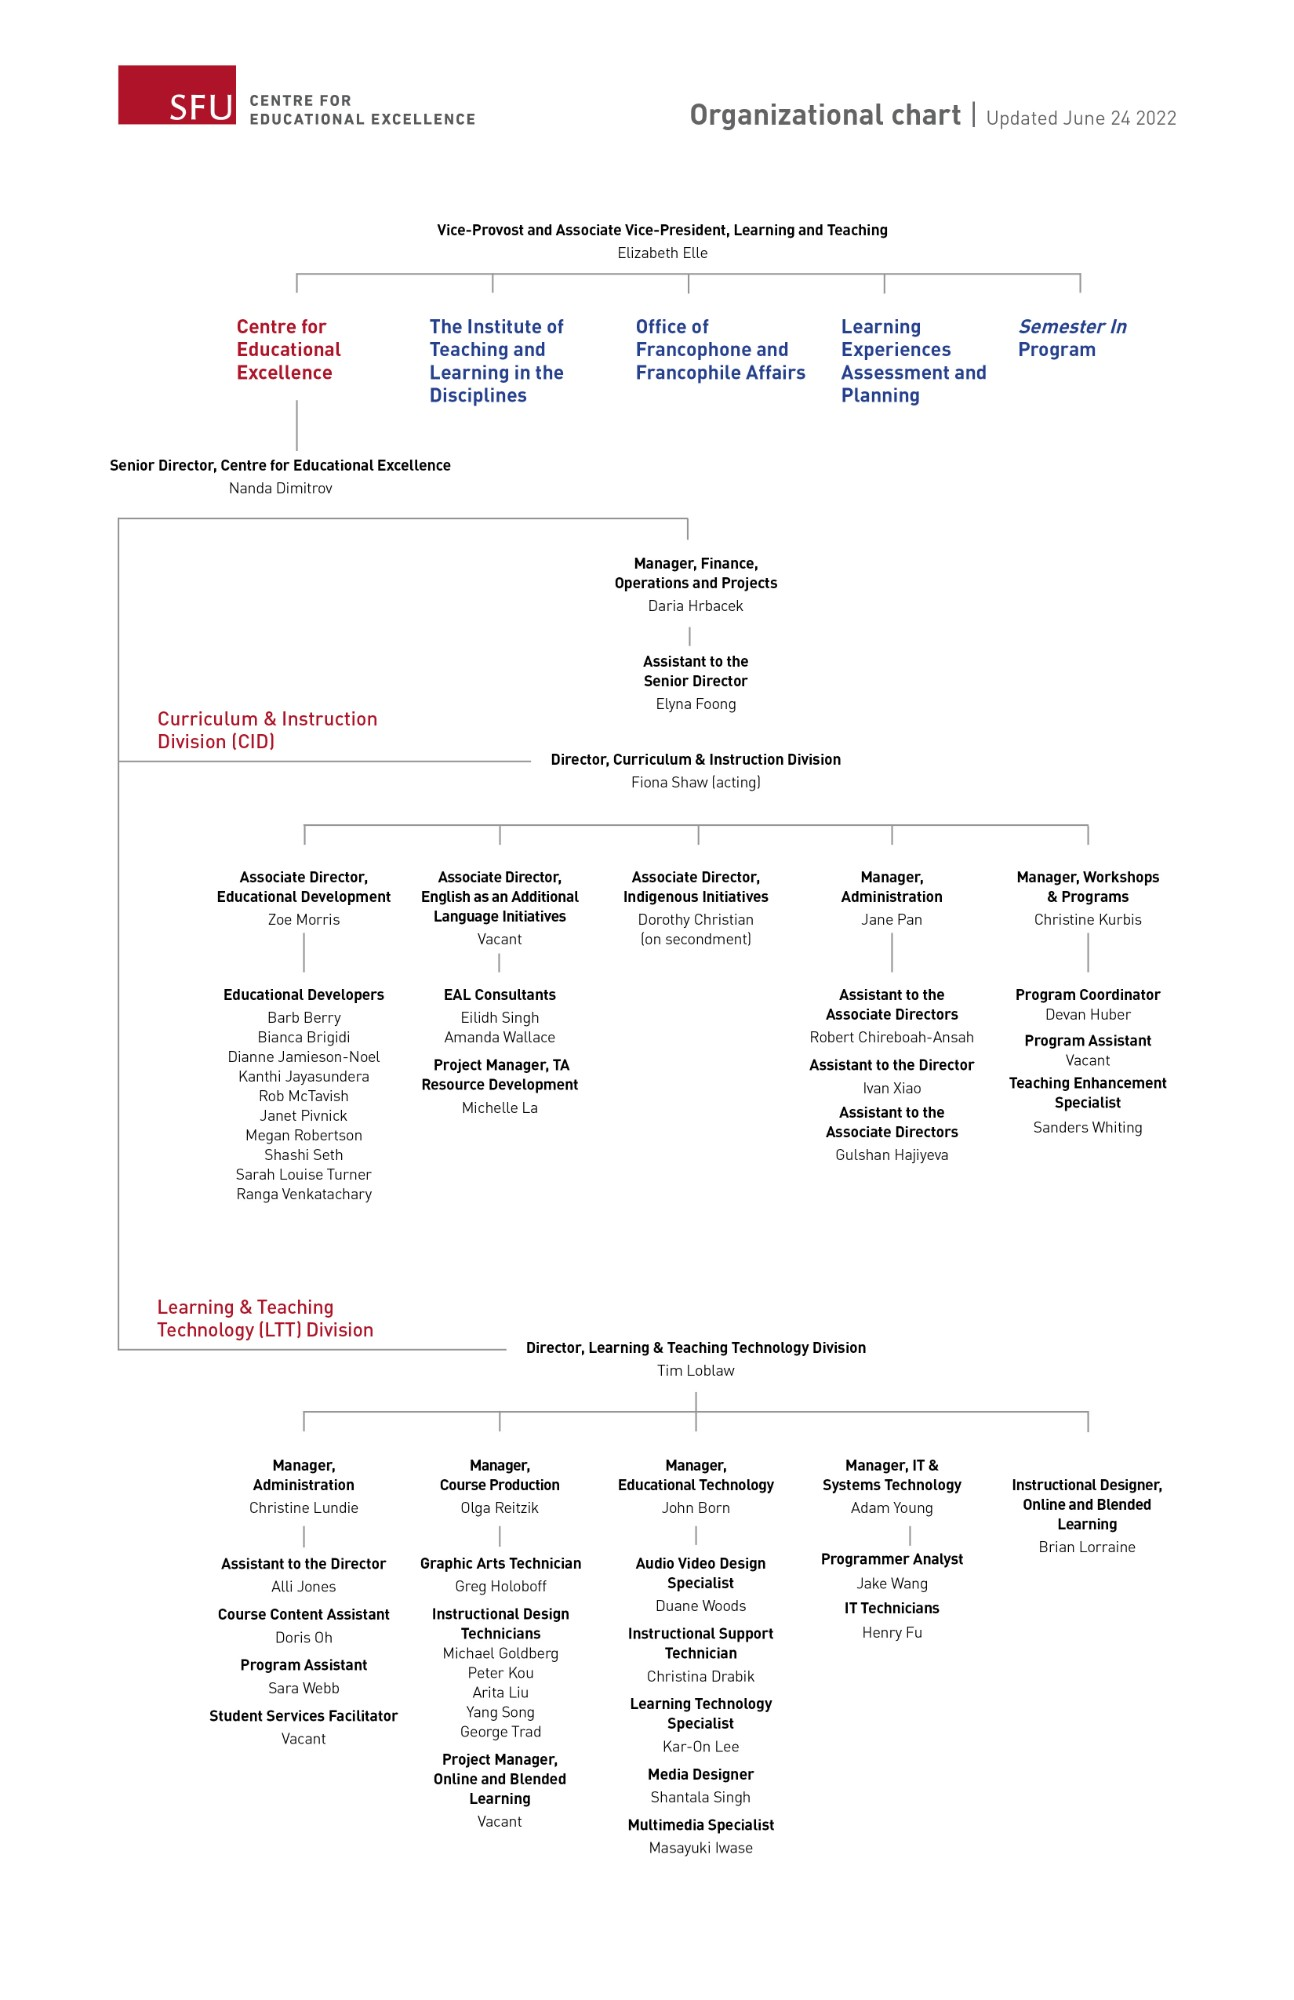 Centre for Educational Excellence Org Chart